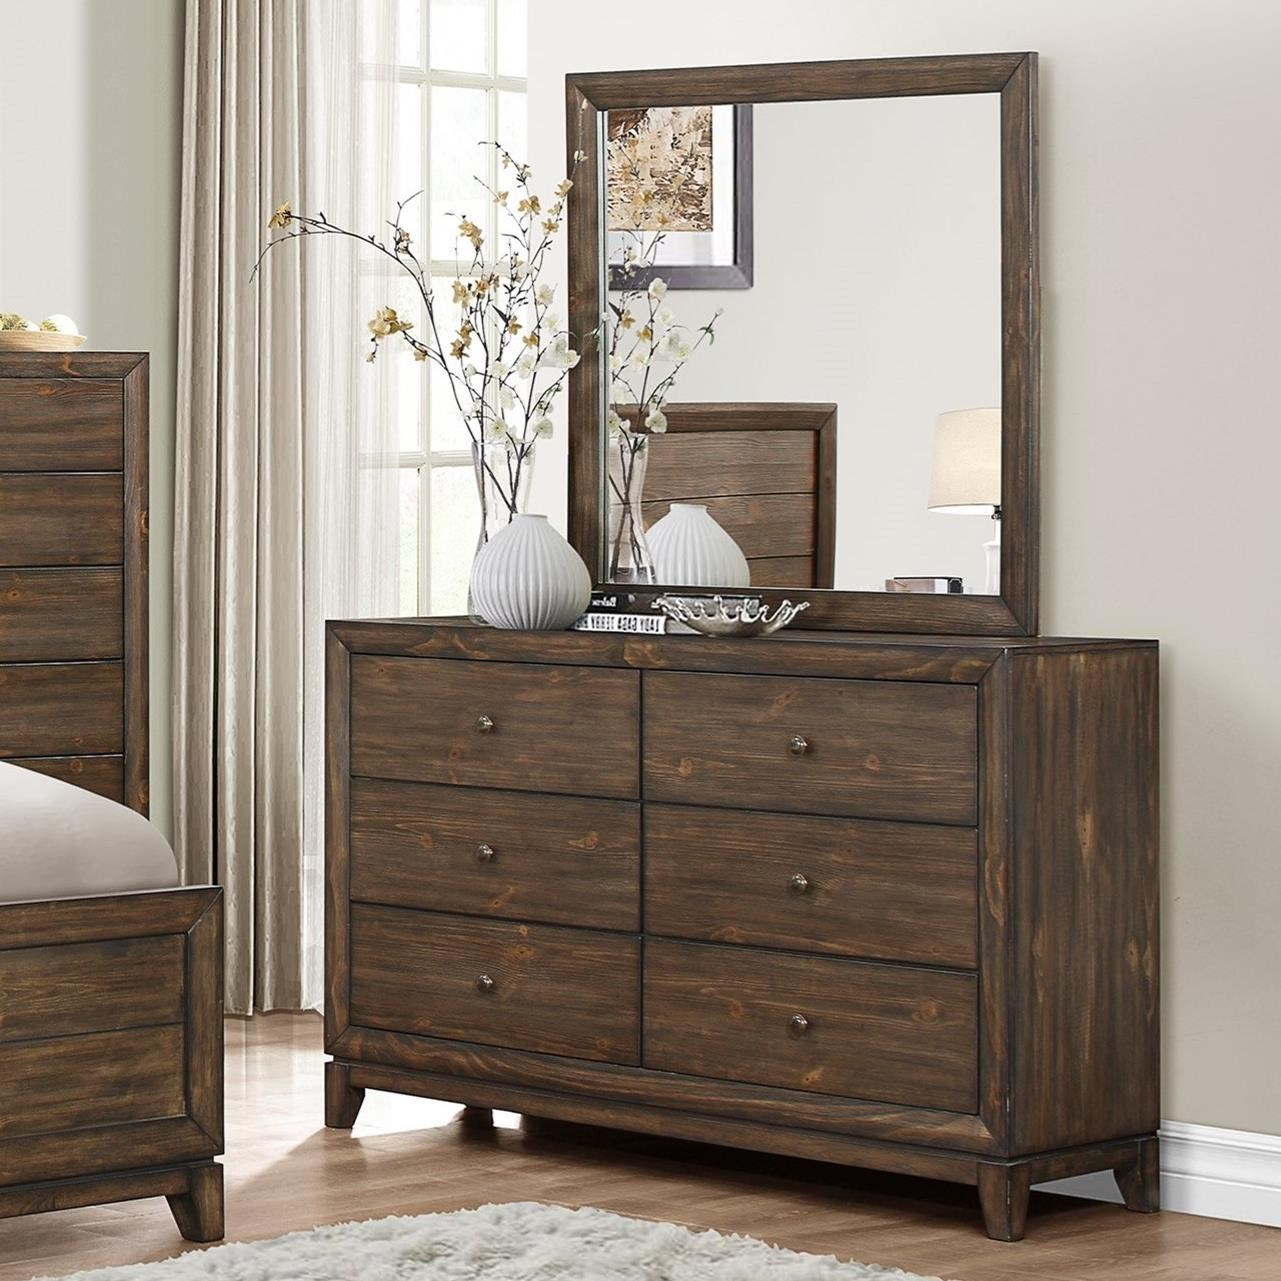 Crown mark rhone 6 drawer dresser and mirror set dunk for Furniture markup